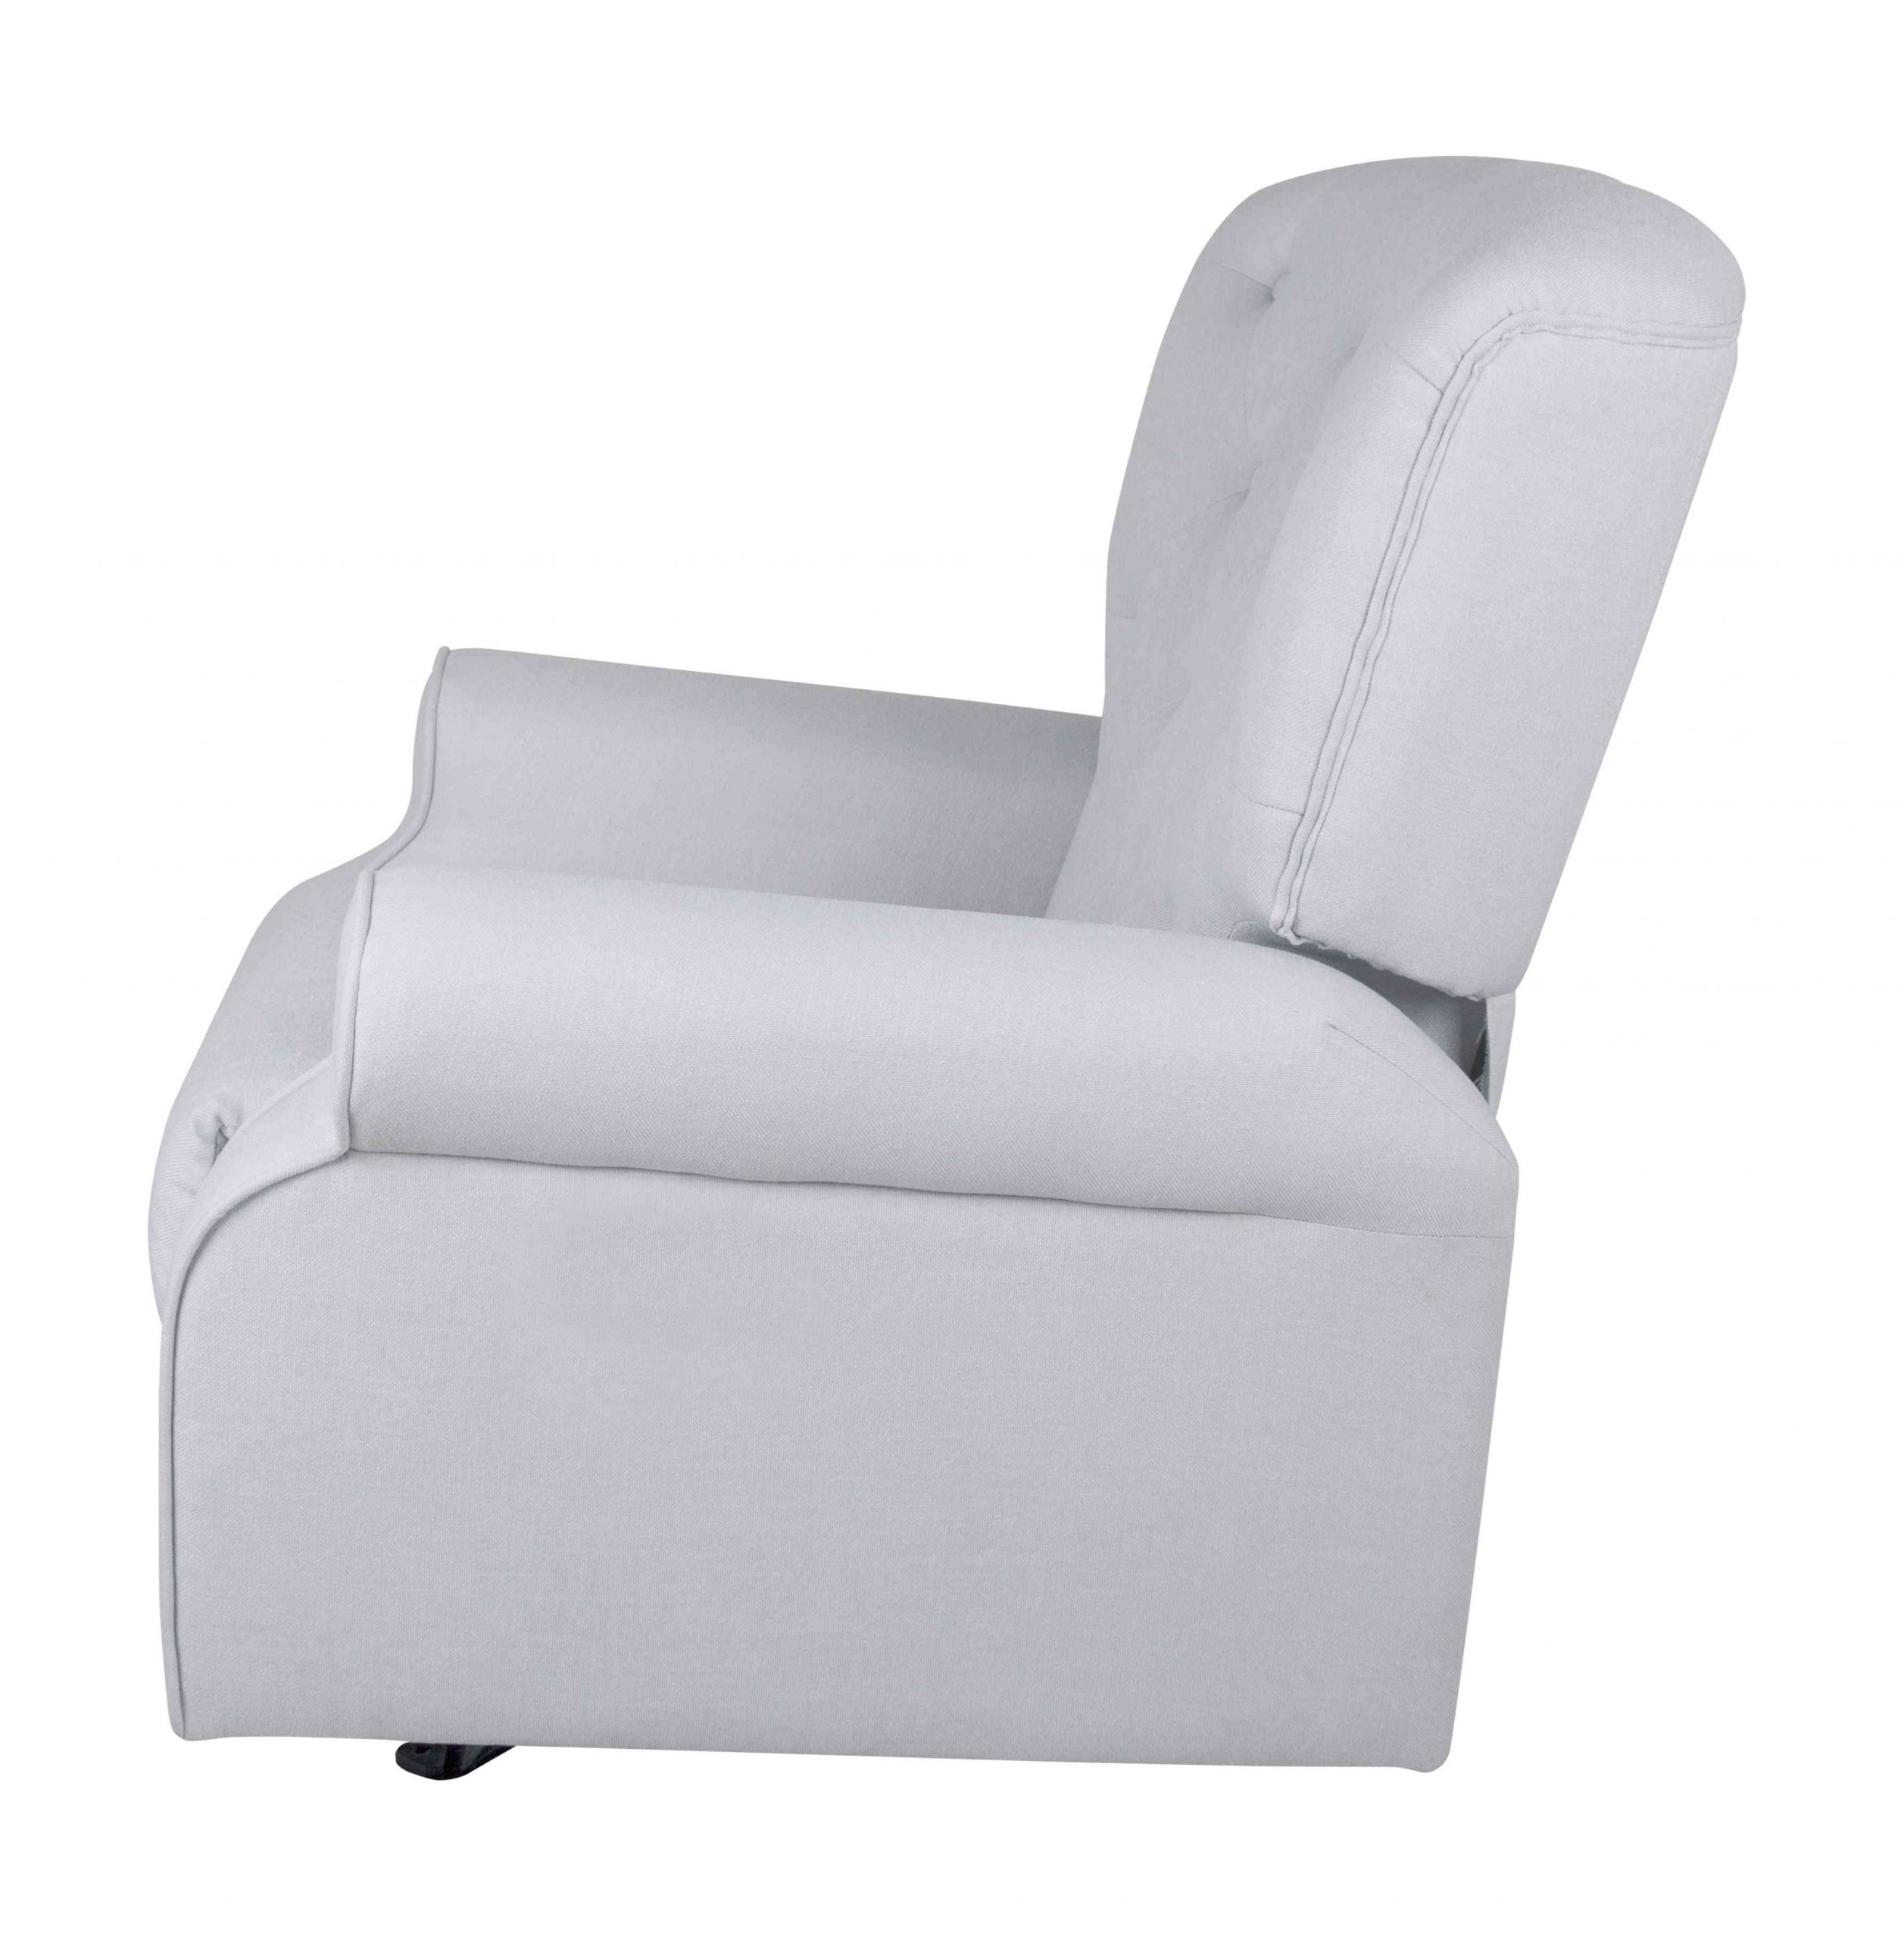 Chester Rocking Chair - Silver